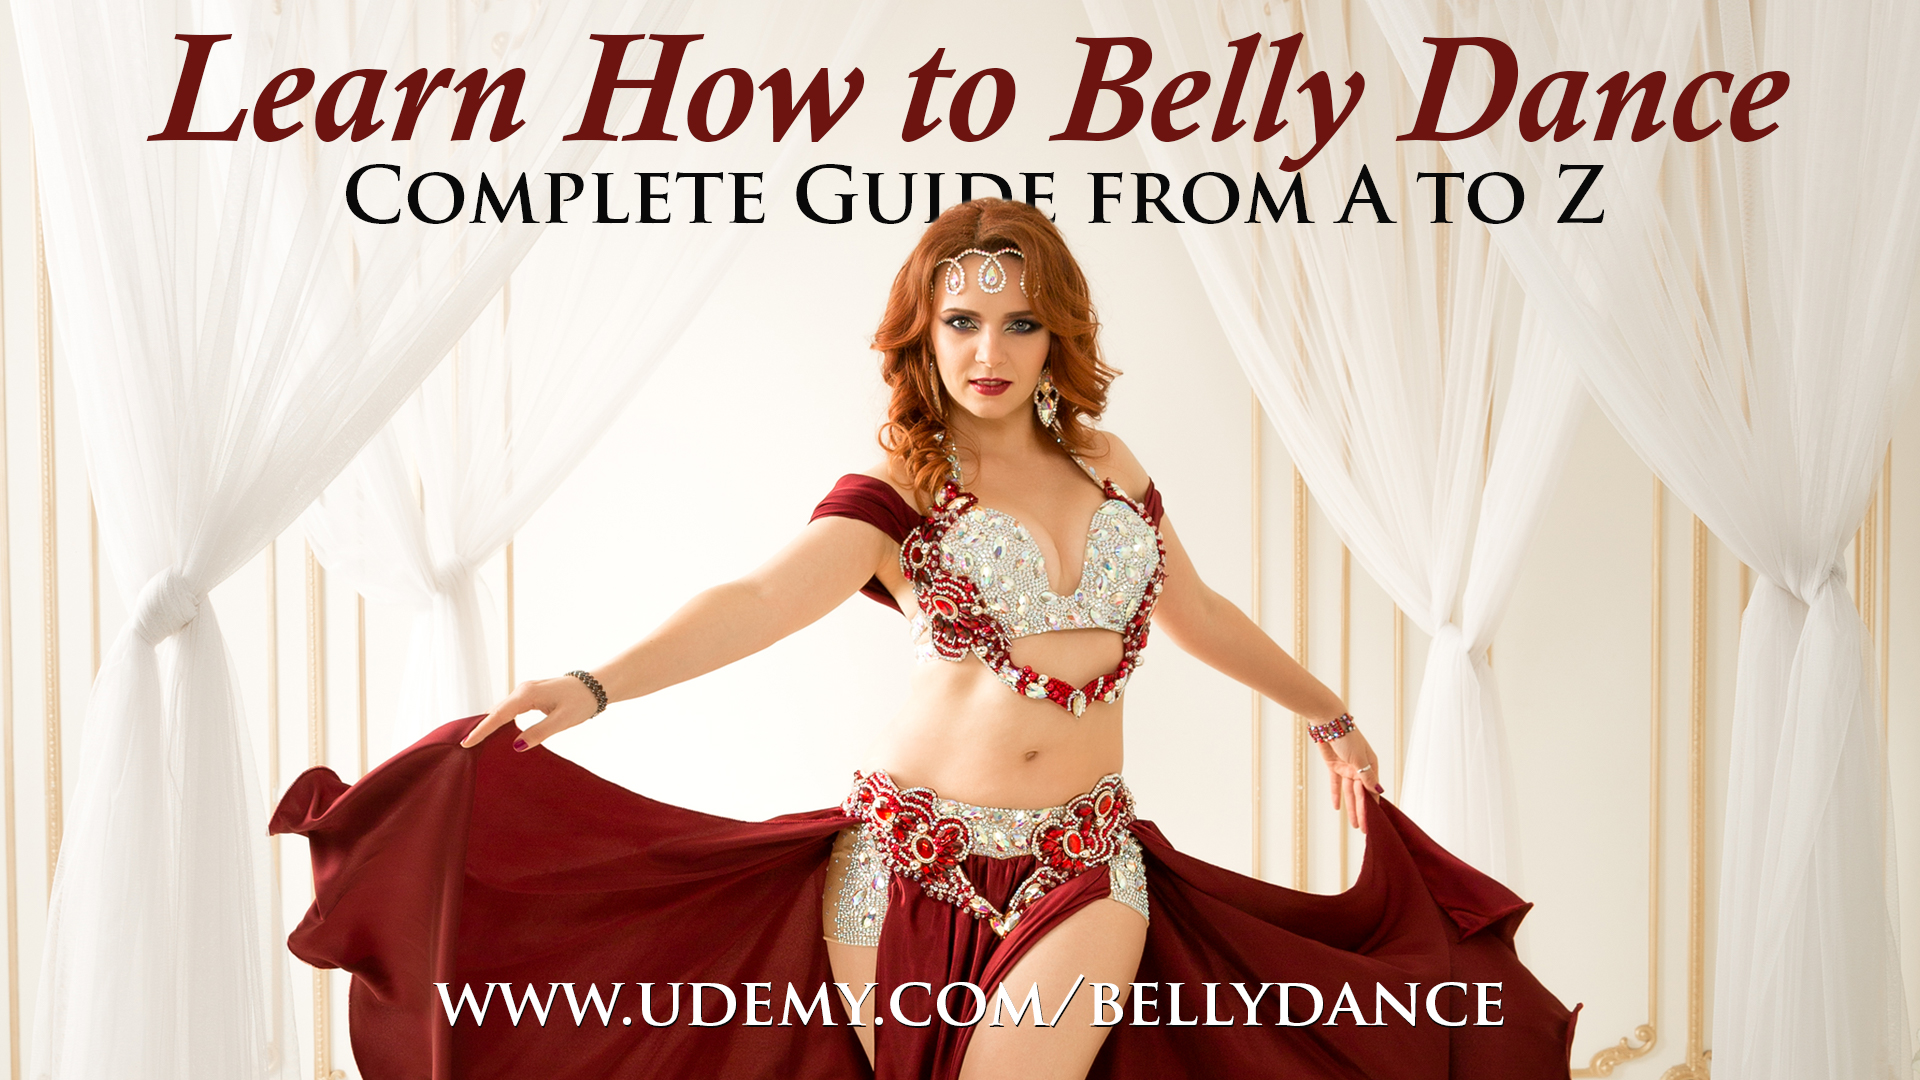 learn-how-to-belly-dance-iana-komarnytska.jpg